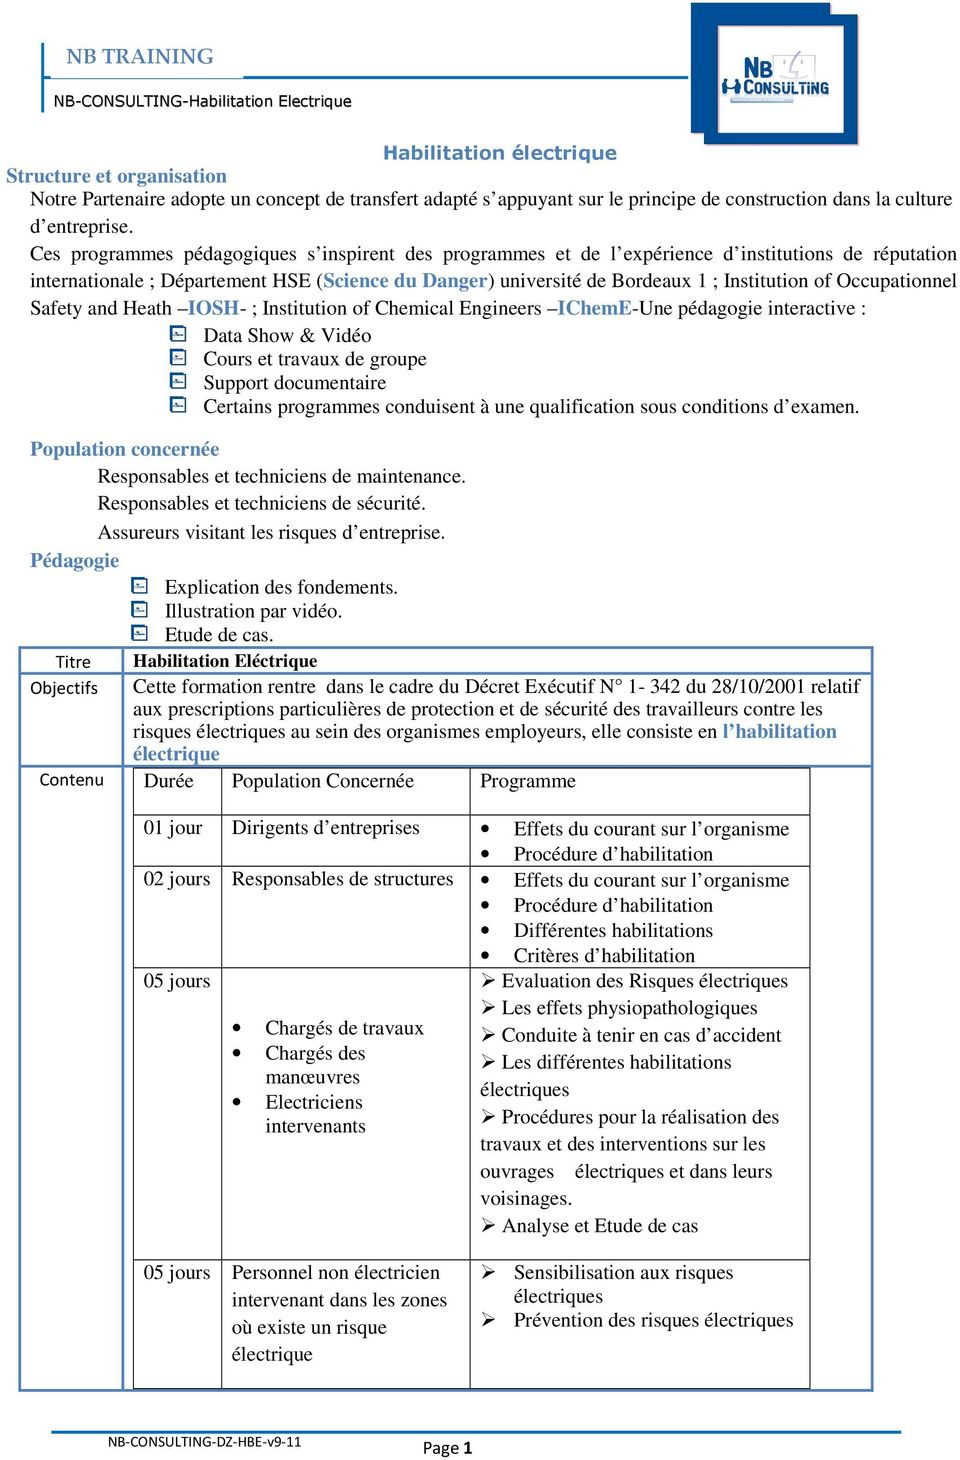 Occupationnel Safety and Heath IOSH- ; Institution of Chemical Engineers IChemE-Une pédagogie interactive : Data Show & Vidéo Cours et travaux de groupe Support documentaire Certains programmes